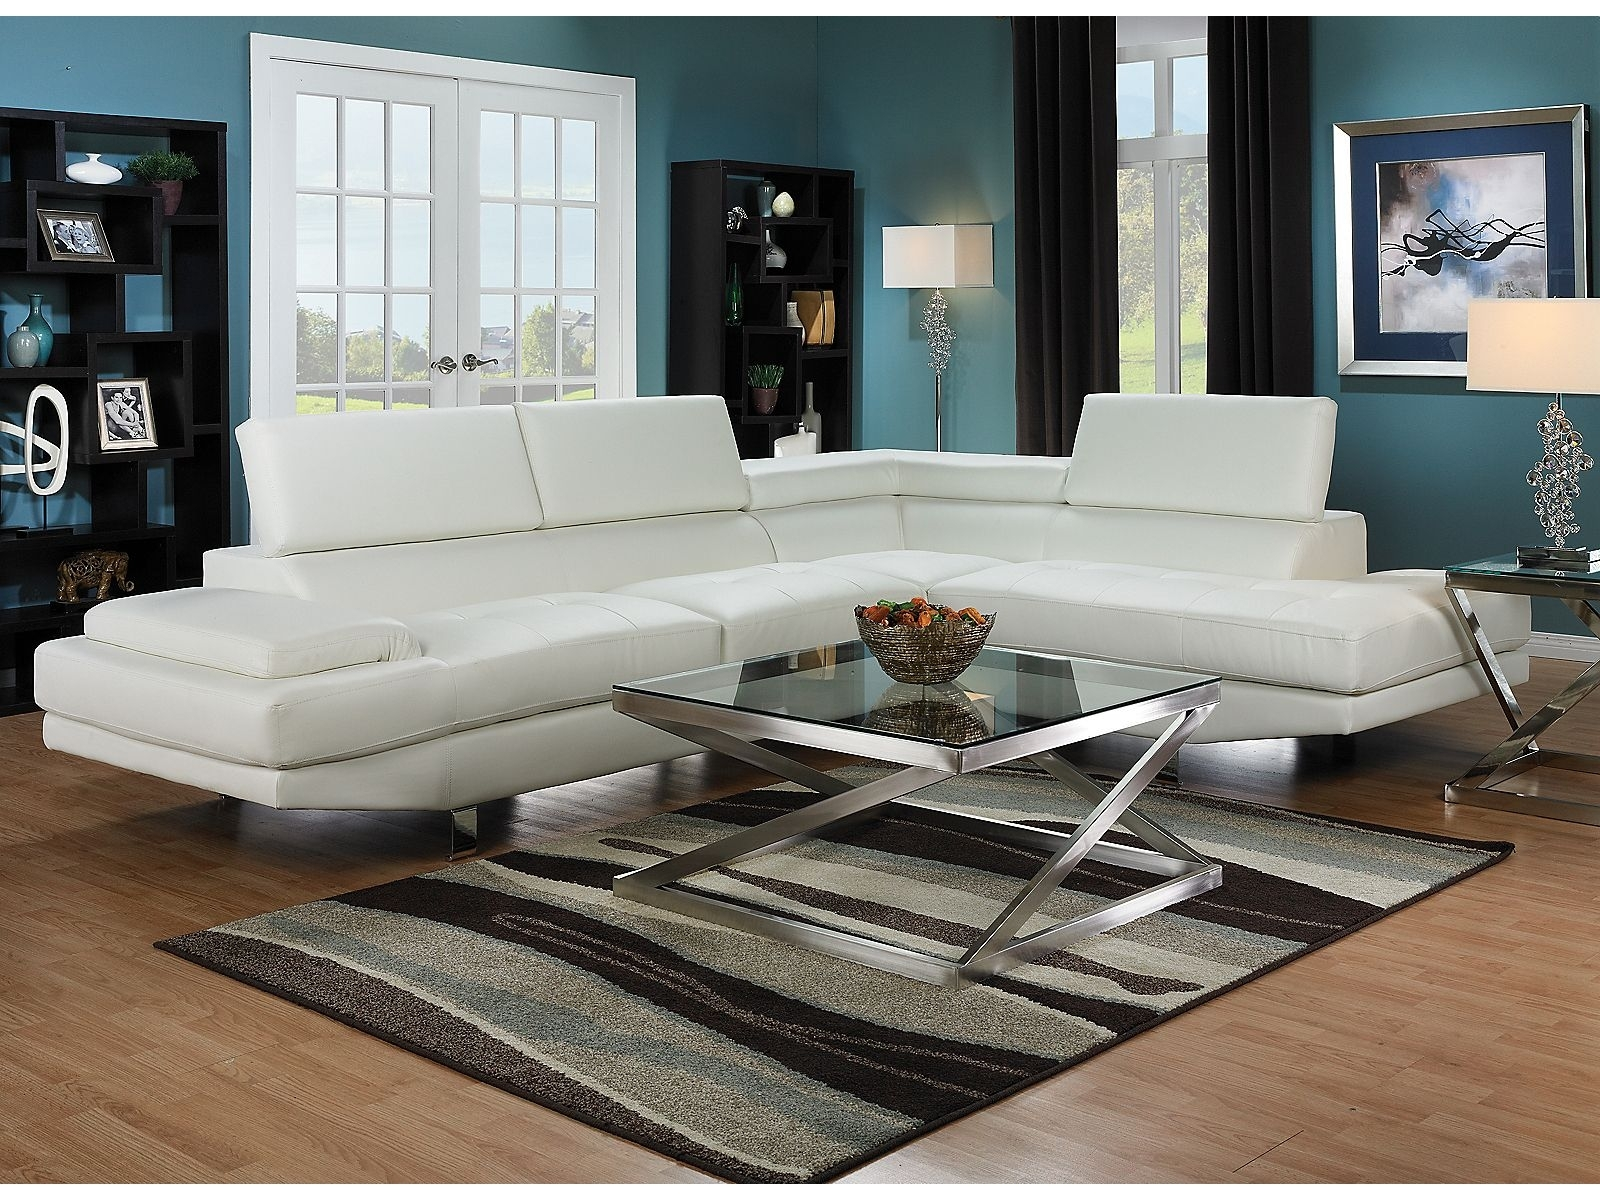 Zane 2-Piece Sectional With Right-Facing Chaise - White | Things in Sectional Sofas At The Brick (Image 15 of 15)